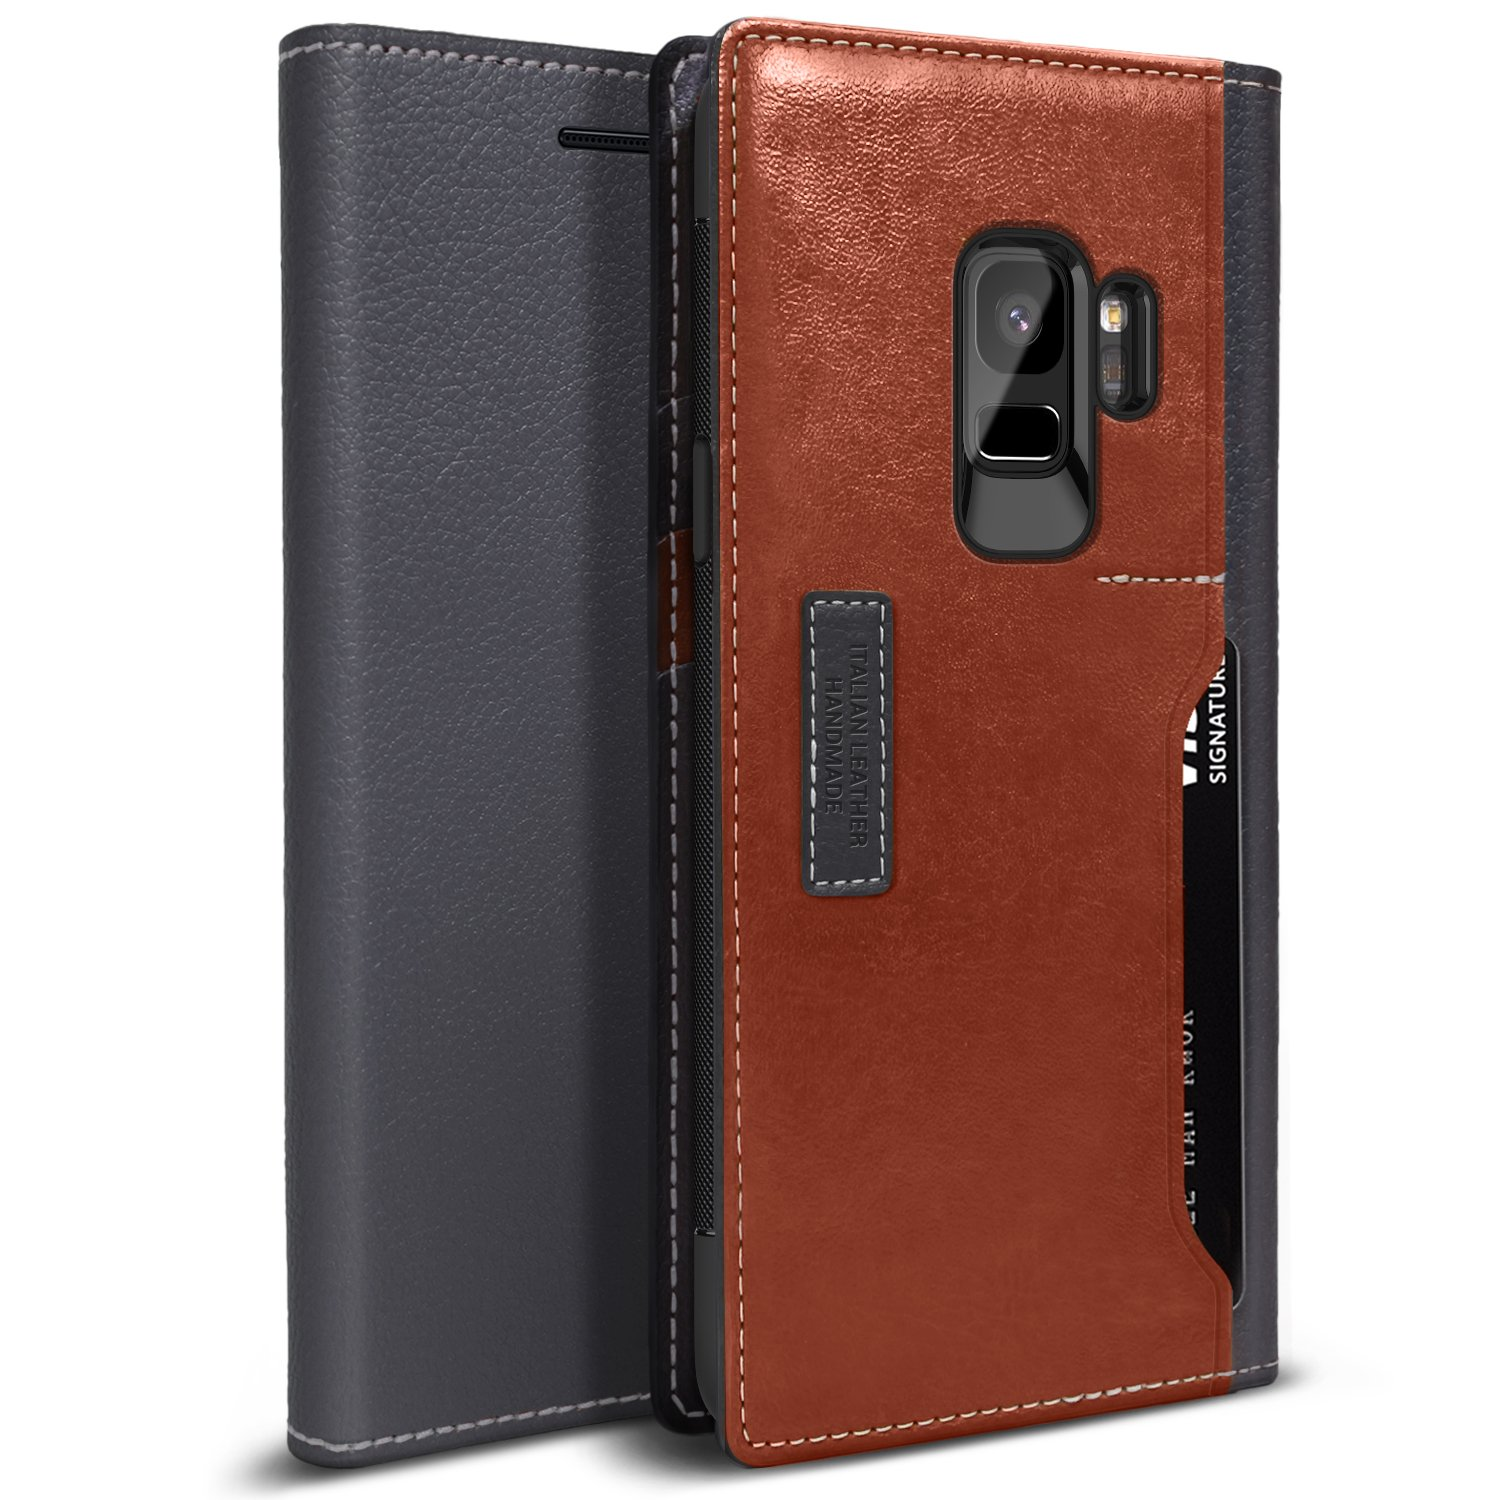 Galaxy S9 Case, OBLIQ [K3 WALLET], Flip Cover with Four Credit Card & ID Pocket Slots Stylish Wallet Case made with Premium Italian Leather with Drop Protection & Shock Absorbing Cushions for the Samsung Galaxy S9 (2018). (Black Gray/Brown)